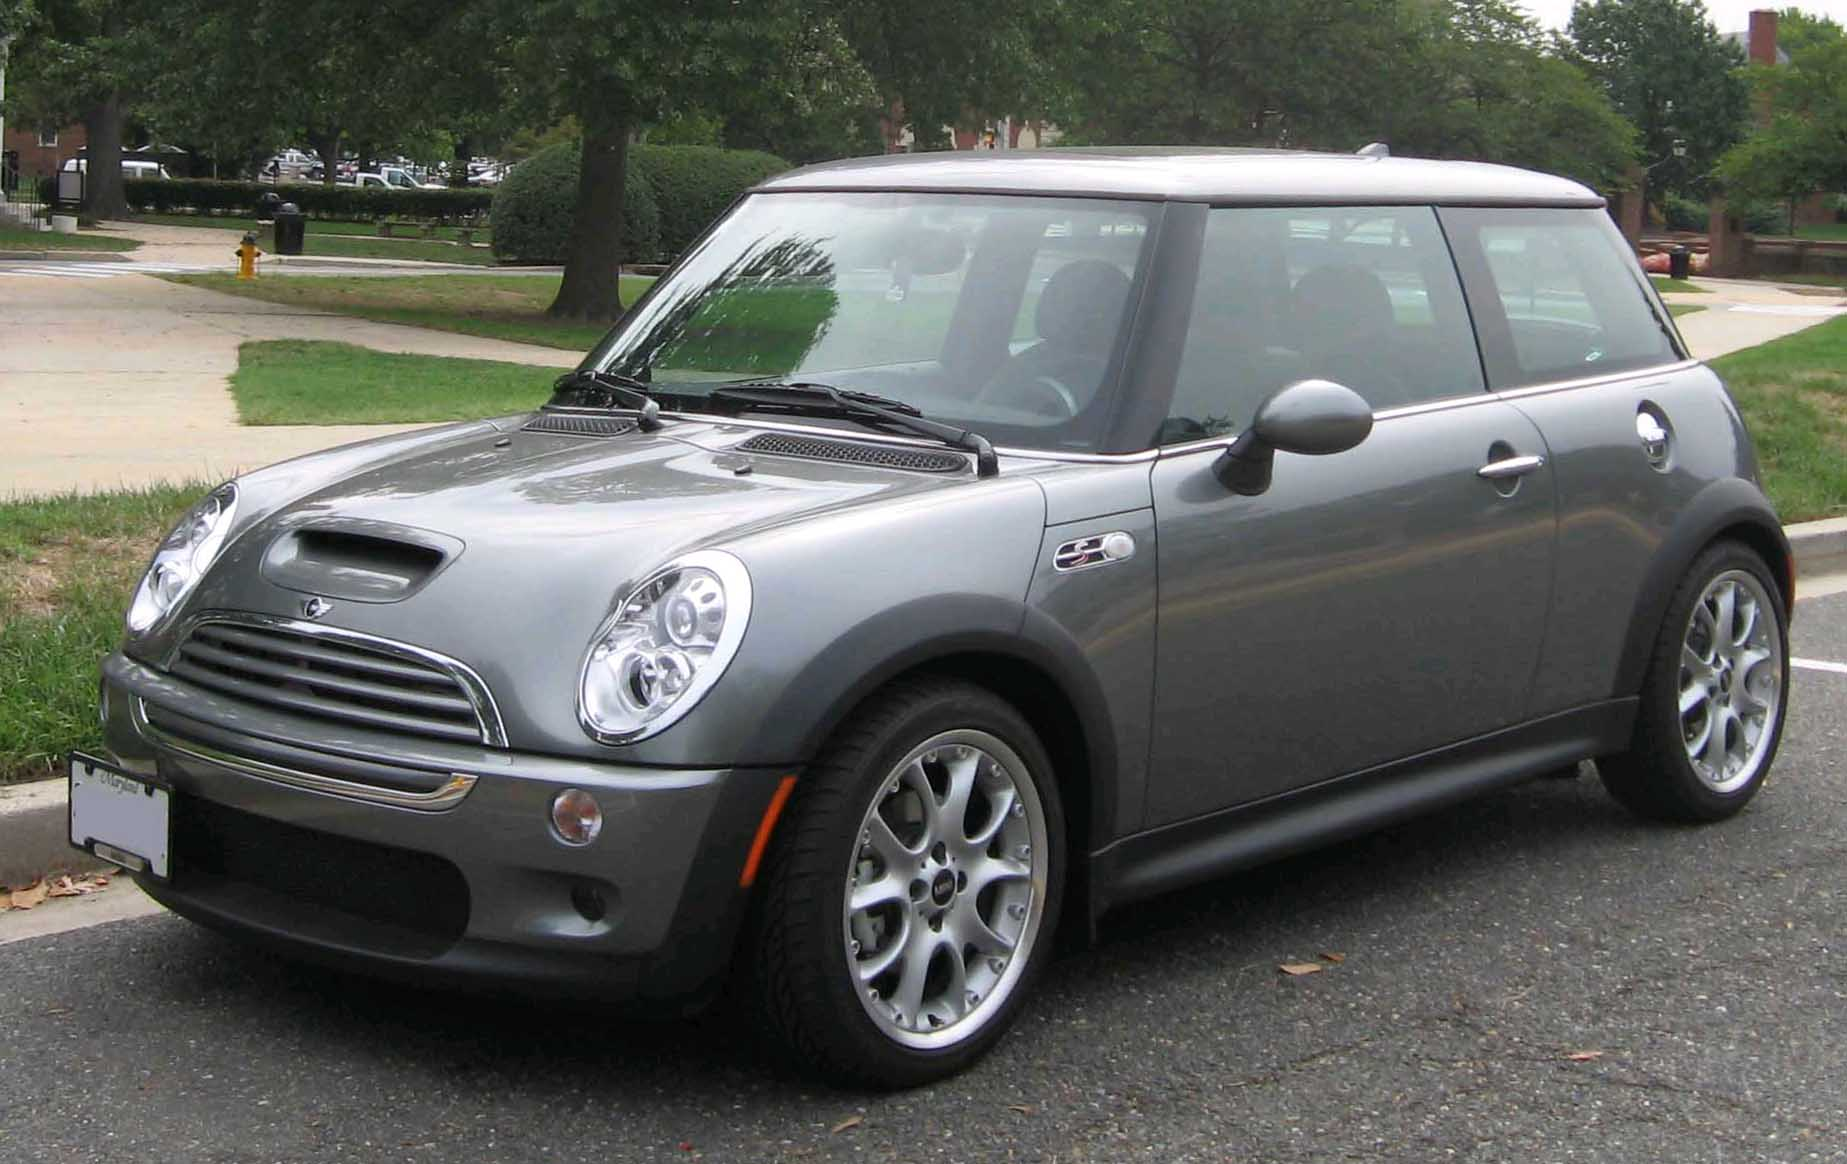 File:1st-Mini-Cooper-S.jpg - Wikimedia Commons